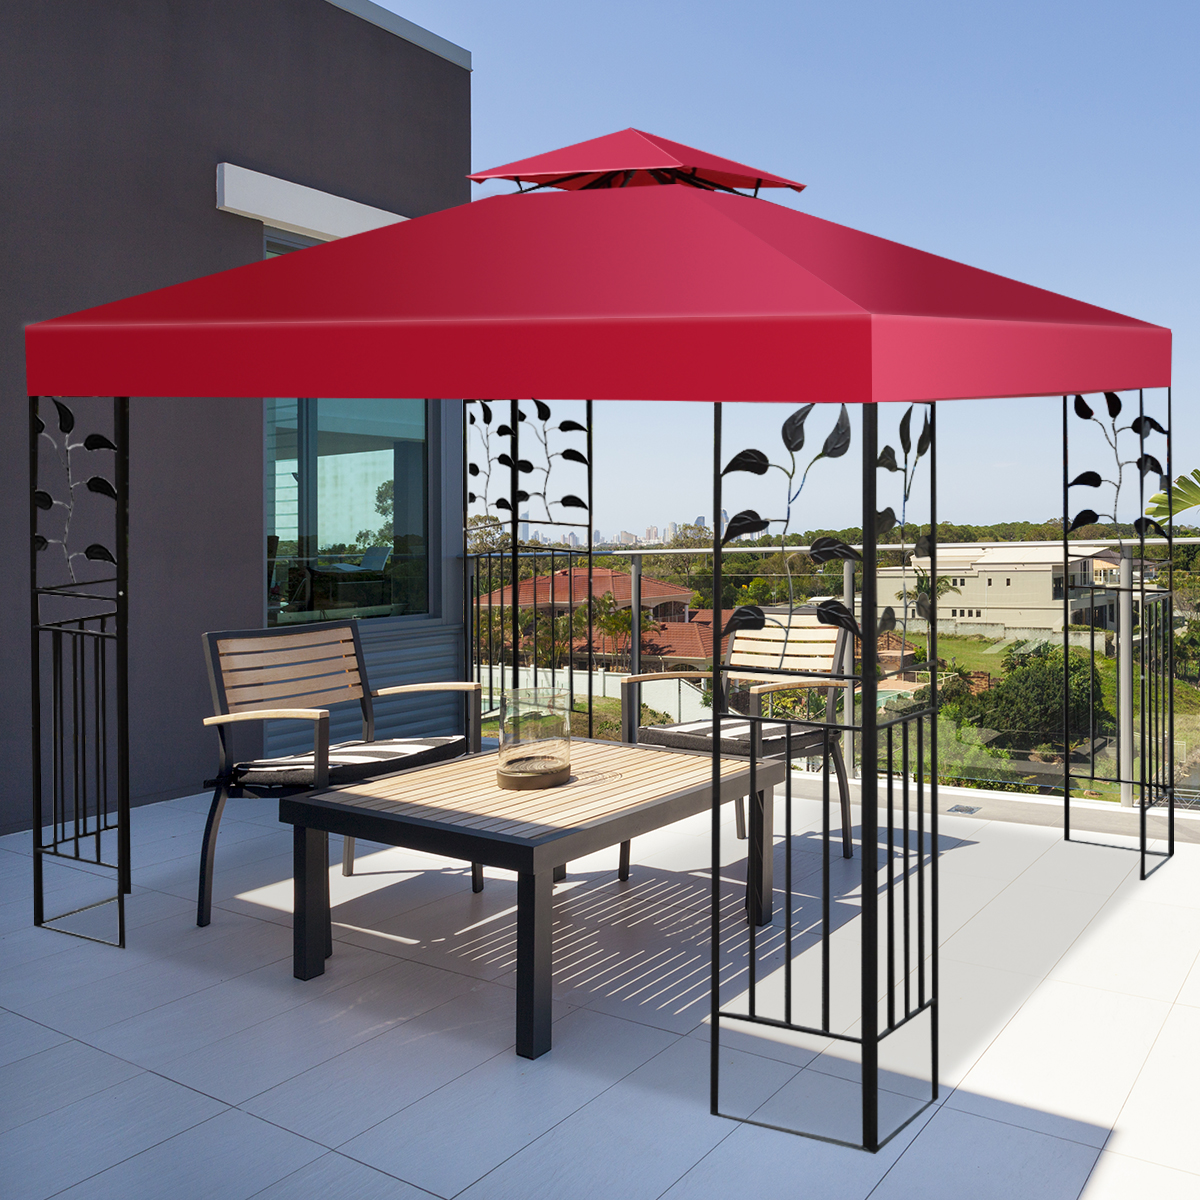 10-039-X-10-039-Gazebo-Top-Cover-Patio-Canopy-Replacement-1-Tier-or-2-Tier-3-Color thumbnail 53